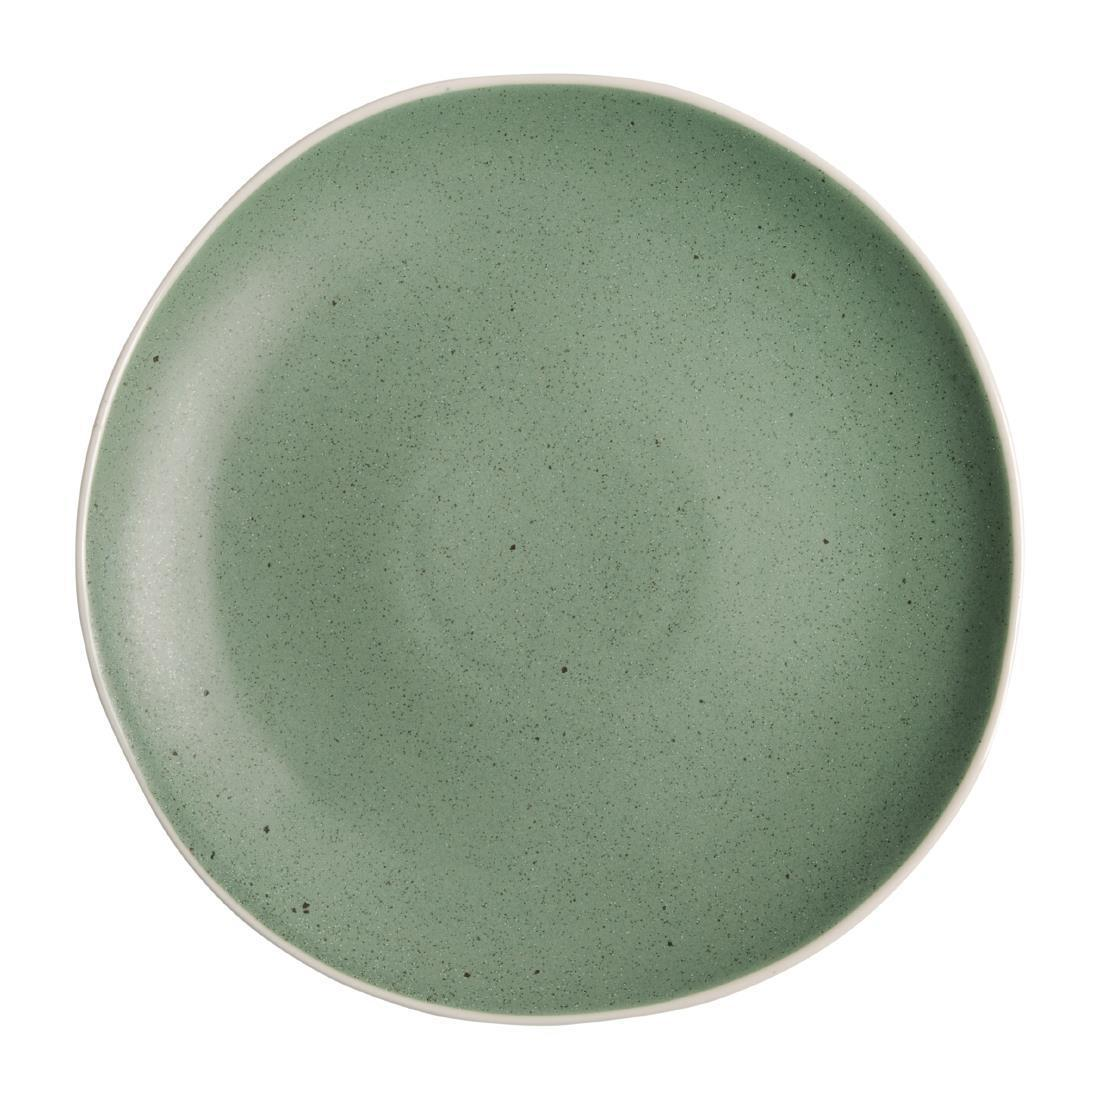 Olympia Chia Plates Green 270mm